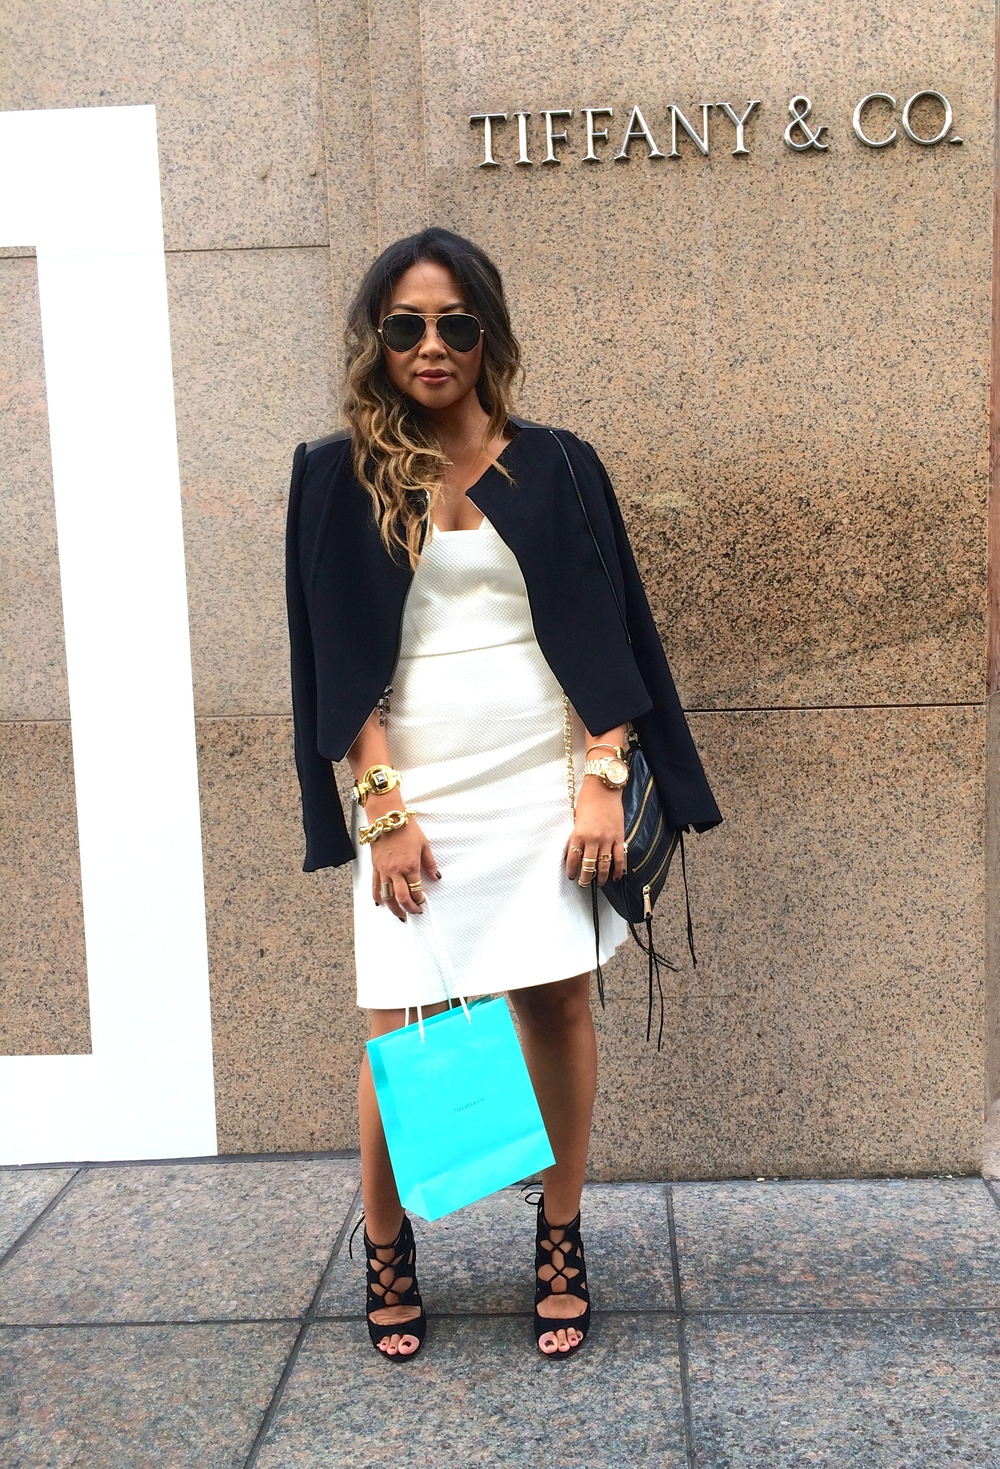 "WHITE + BLACK   ""White with Black"" is a personal favorite combo.  Done the right way, it can make a statement while being the perfect chic look for a power work day.  Adding personal gold touches on your arm stack or ring party is an easy way to add a layer of personal style.  __________________________________________________________  Dress + Jacket :   Rachel Roy   Bag:   Rebecca Minkoff   Shoes:   Dolce Vita   Specs:  Raybans   Bracelets:   J. Crew   Watch:   Micheal Kors"